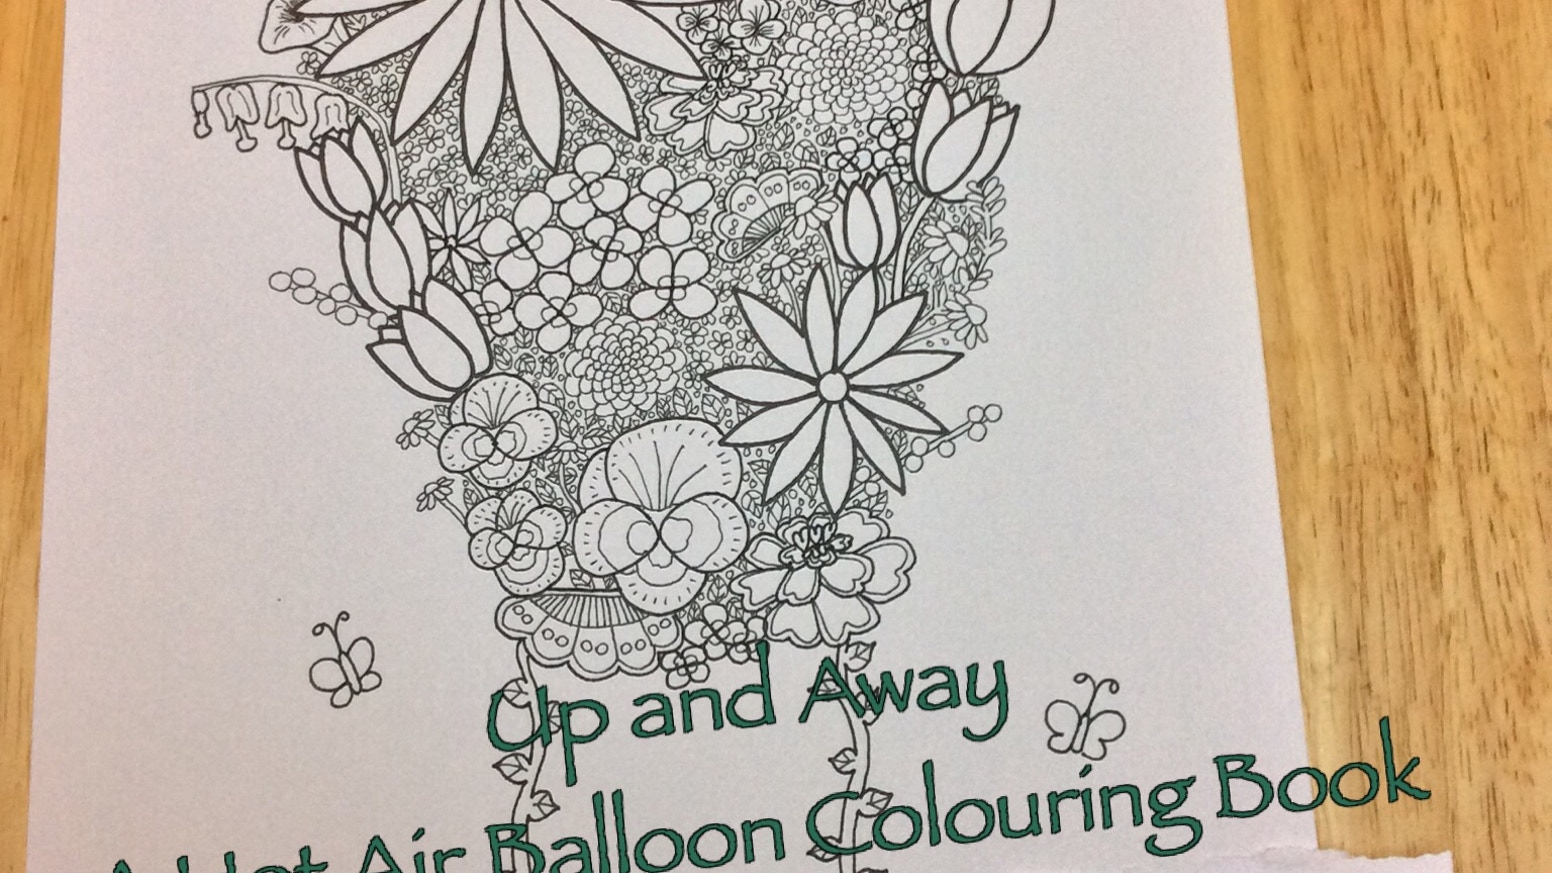 Up And Away A Hot Air Balloon Colouring Book By Stacey Vaux